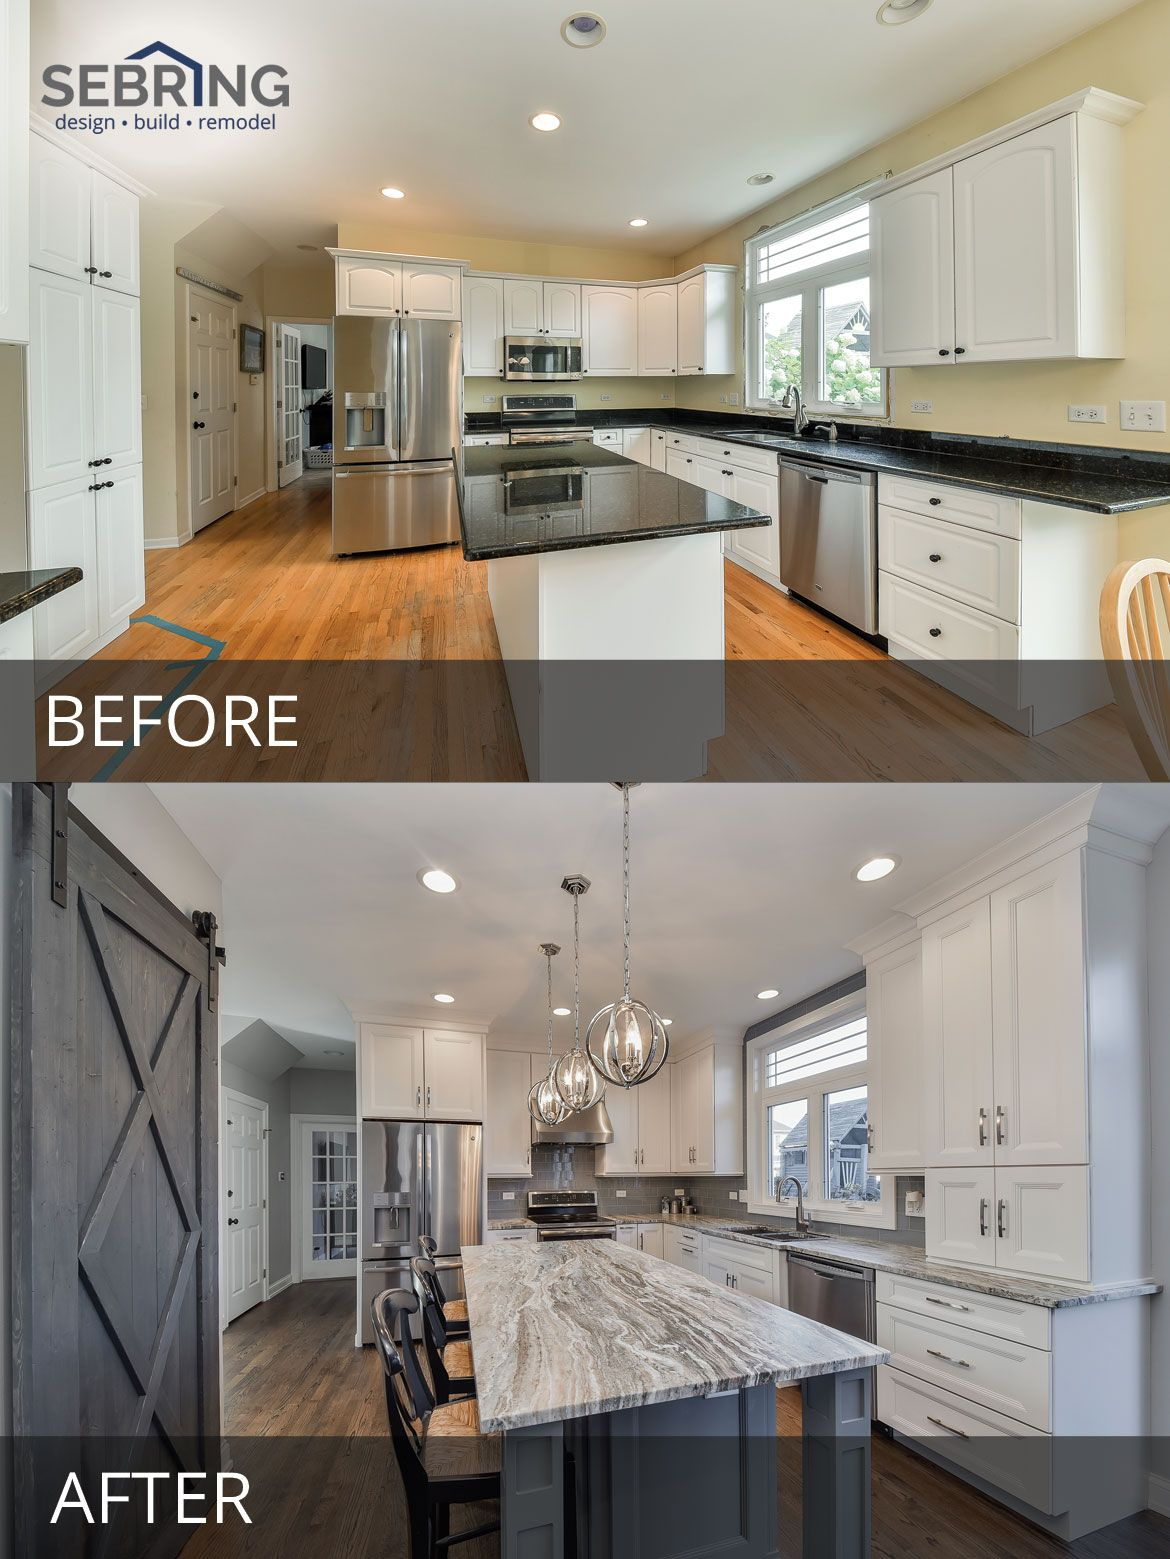 kai s kitchen before after pictures before after kitchen rh pinterest com